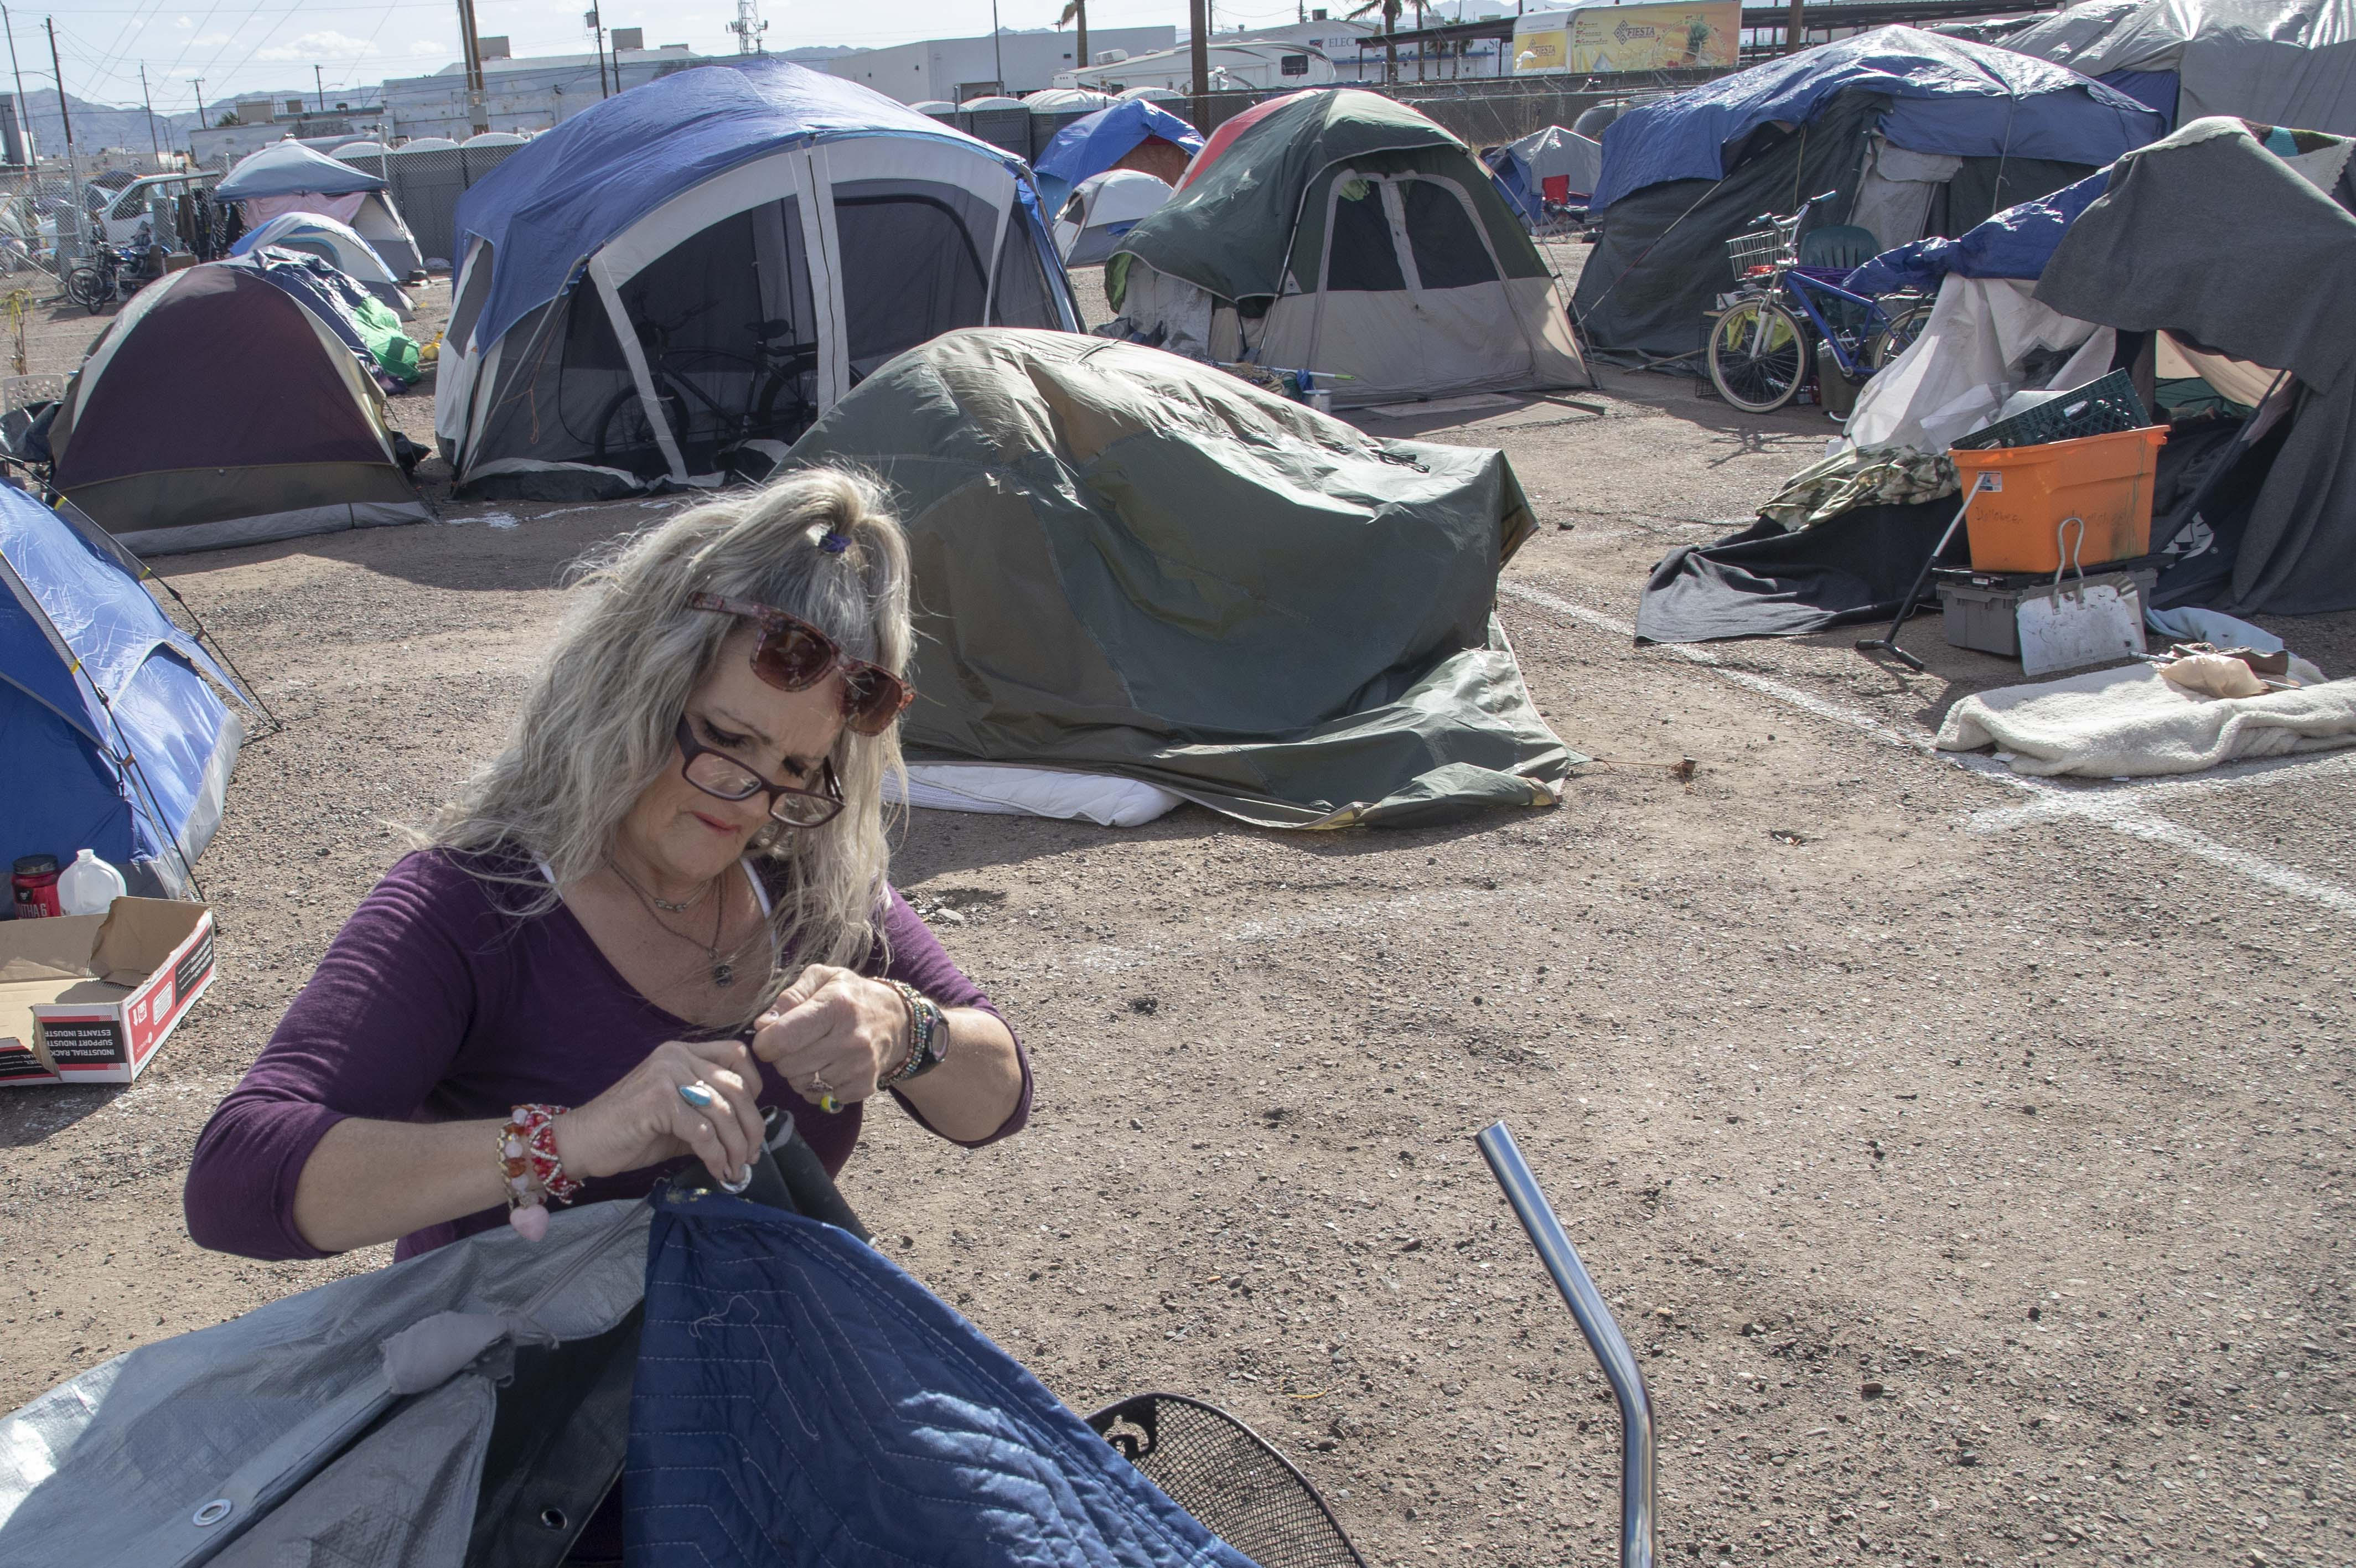 Darlene Carchedi works on a tent in an encampment in downtown Phoenix on Feb. 16, 2021. Darlene lost her previous tent and many of her belongings in a fire in December 2020.